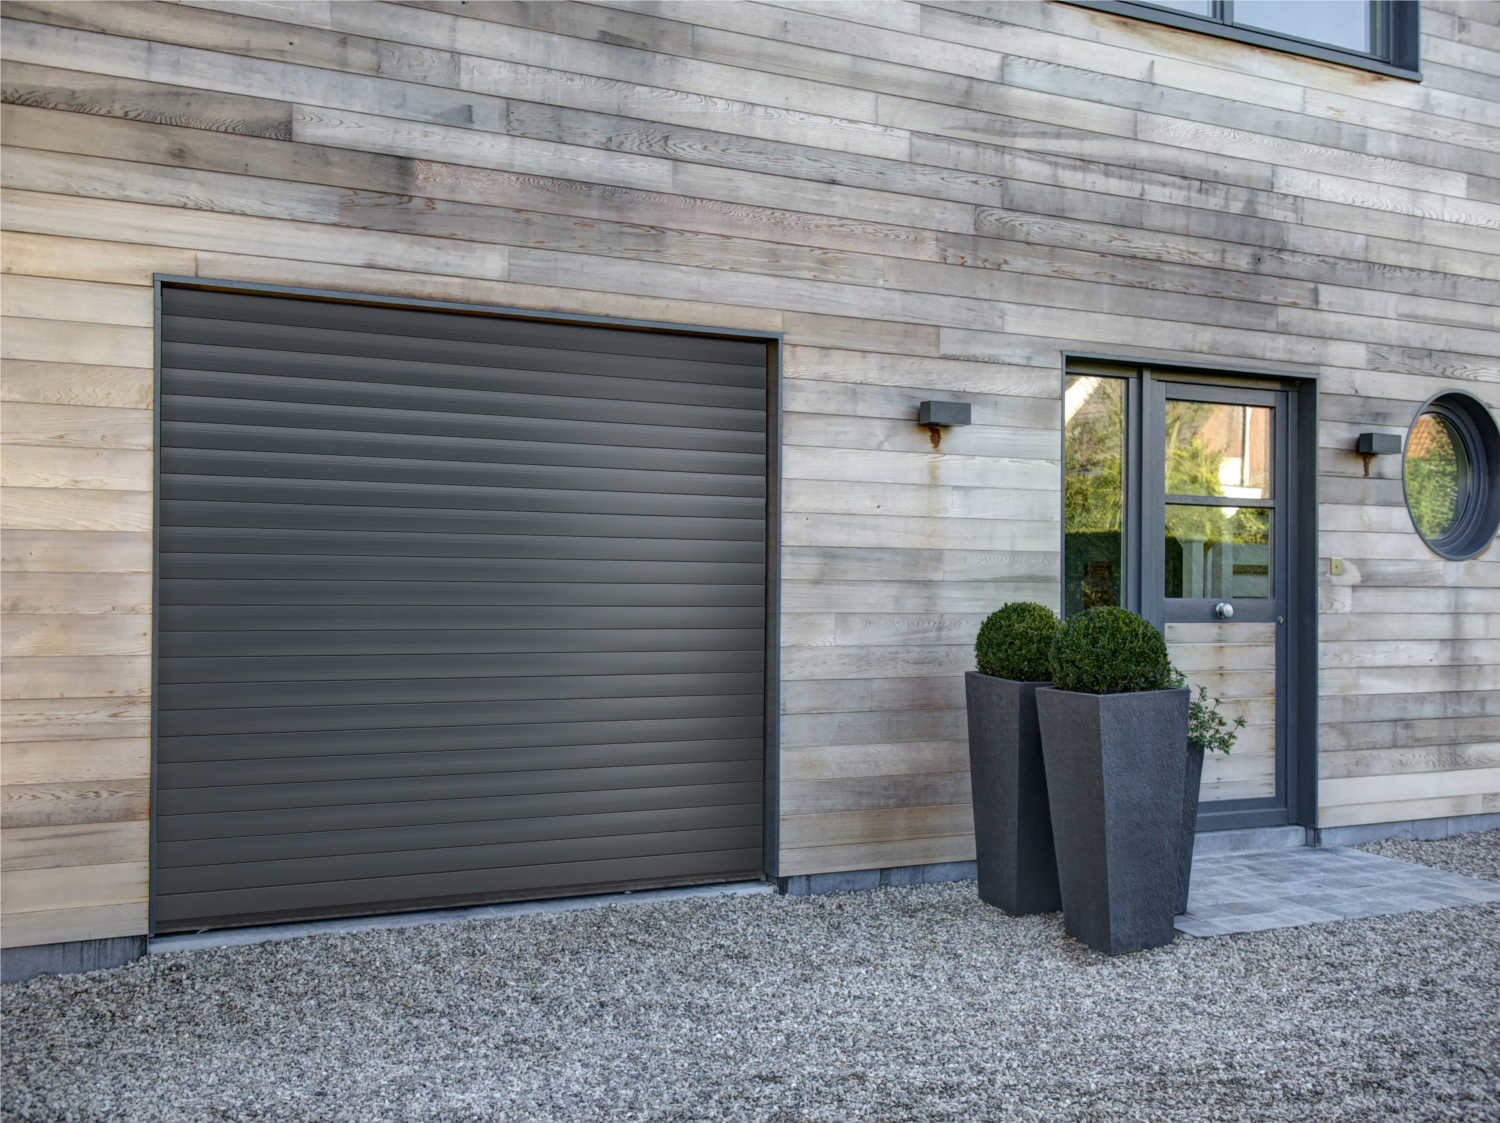 Comment poser une porte de garage fabulous porte de for Comment poser une porte de garage